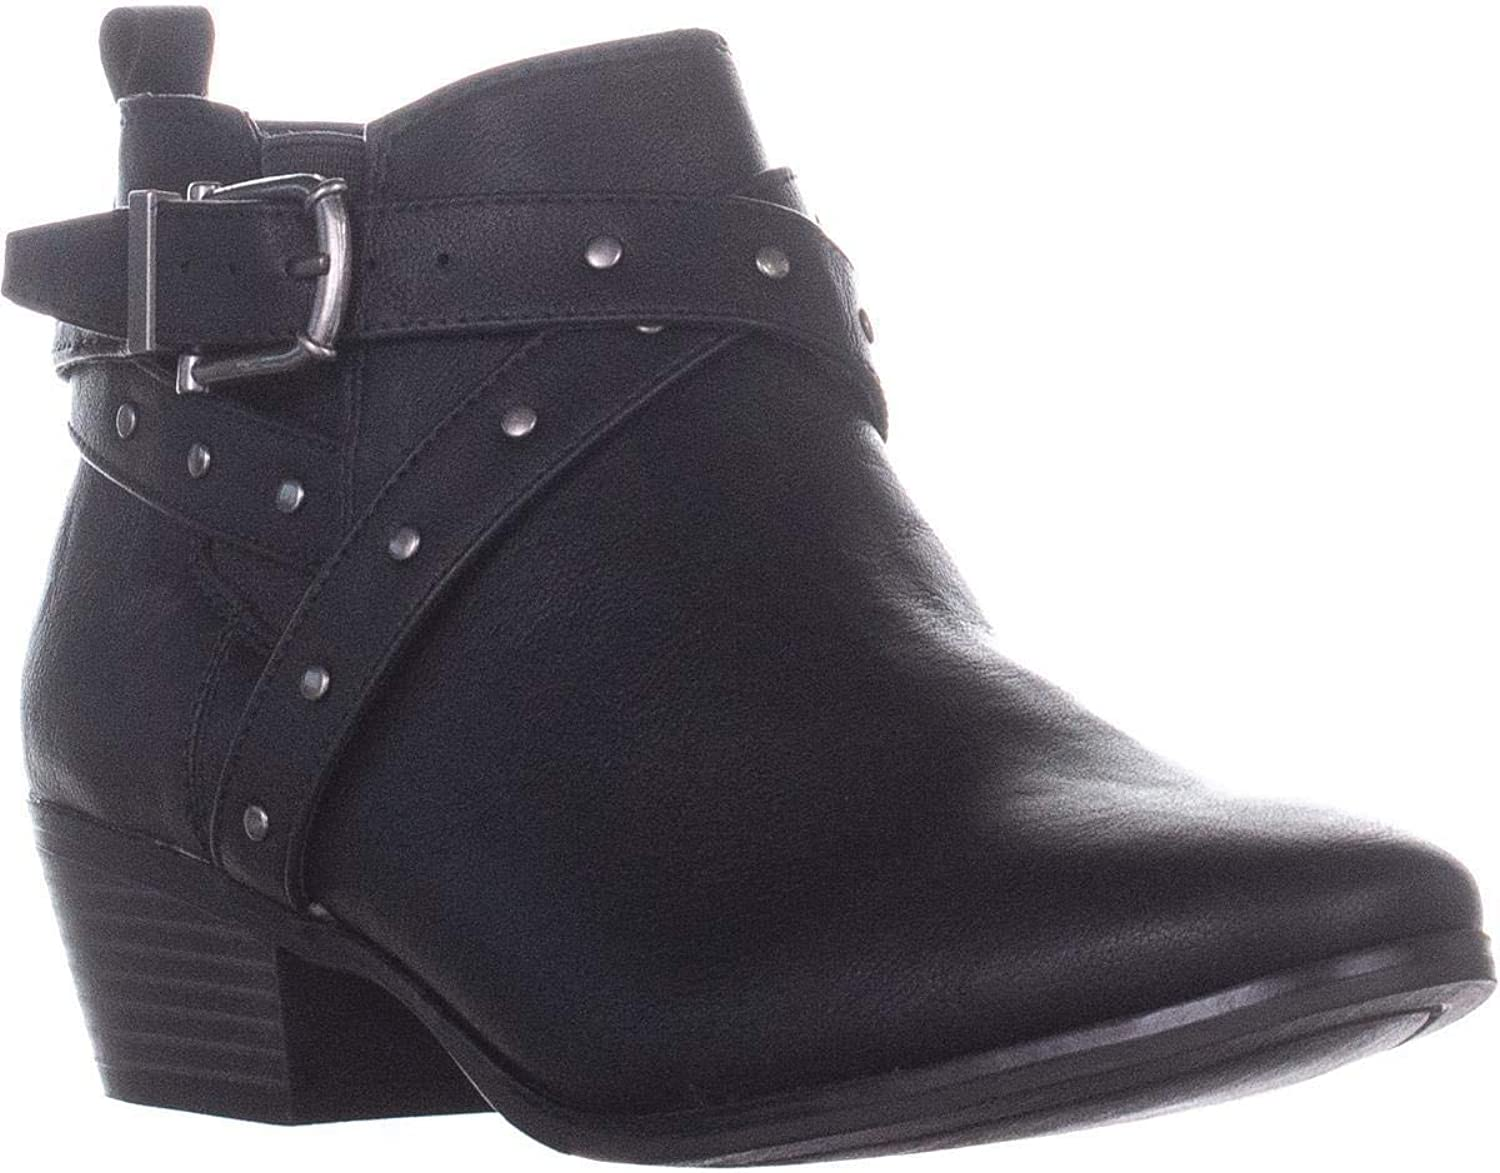 Style & Co. SC35 Harper2 Ankle Boots, Black